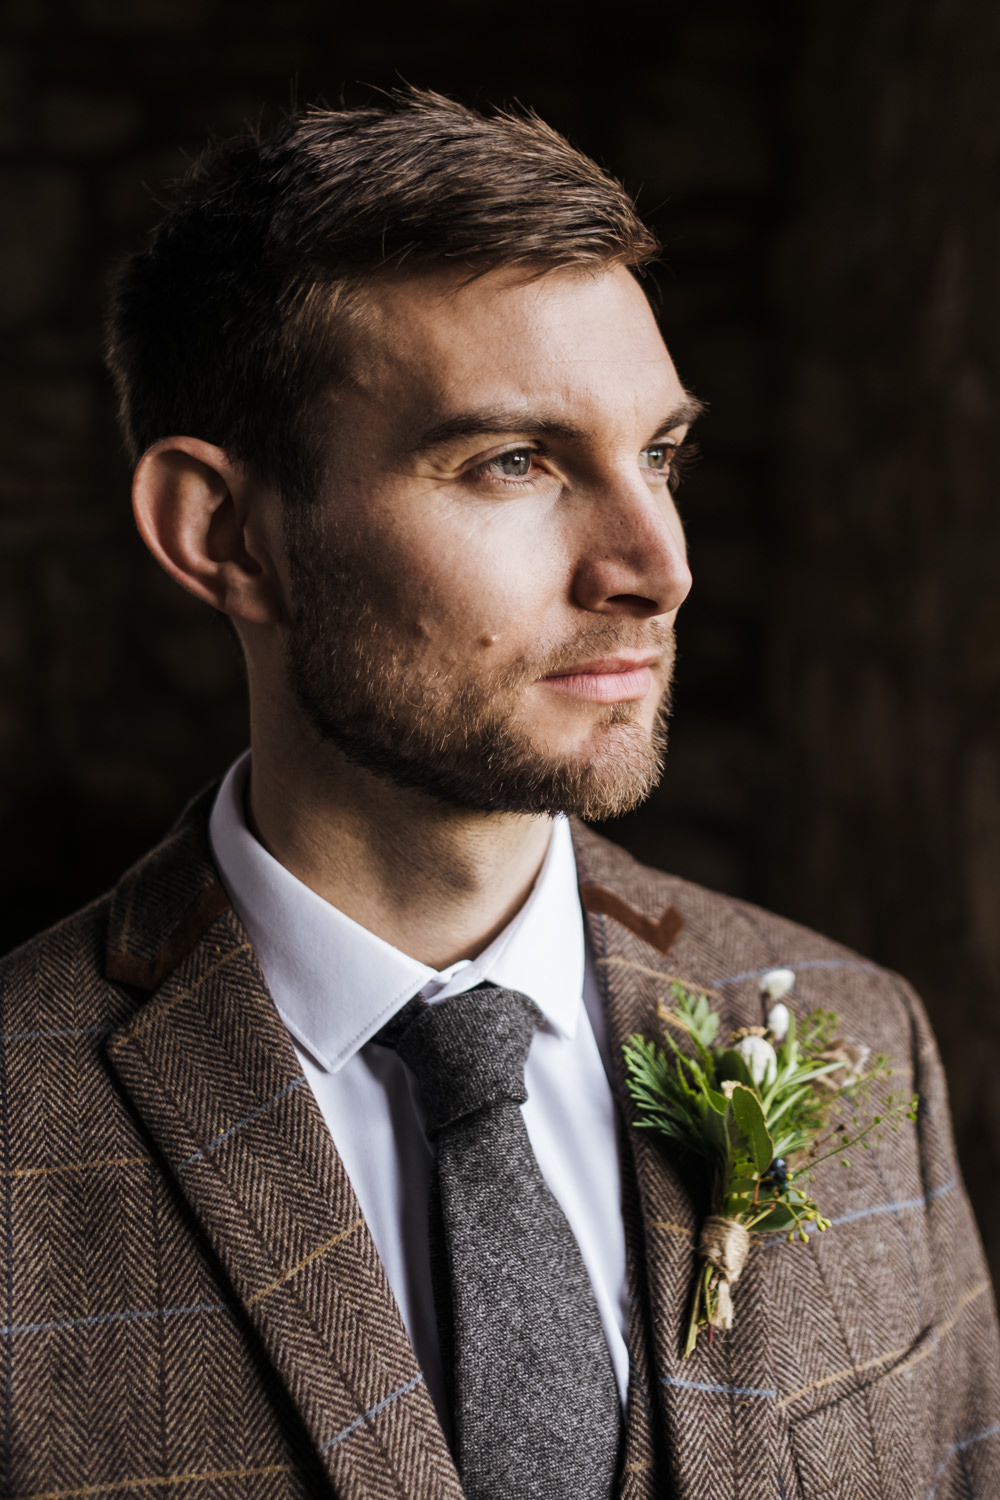 Groom Suit Brown Check Tweed Tie Ethical Wedding Ideas Jenna Kathleen Photographer